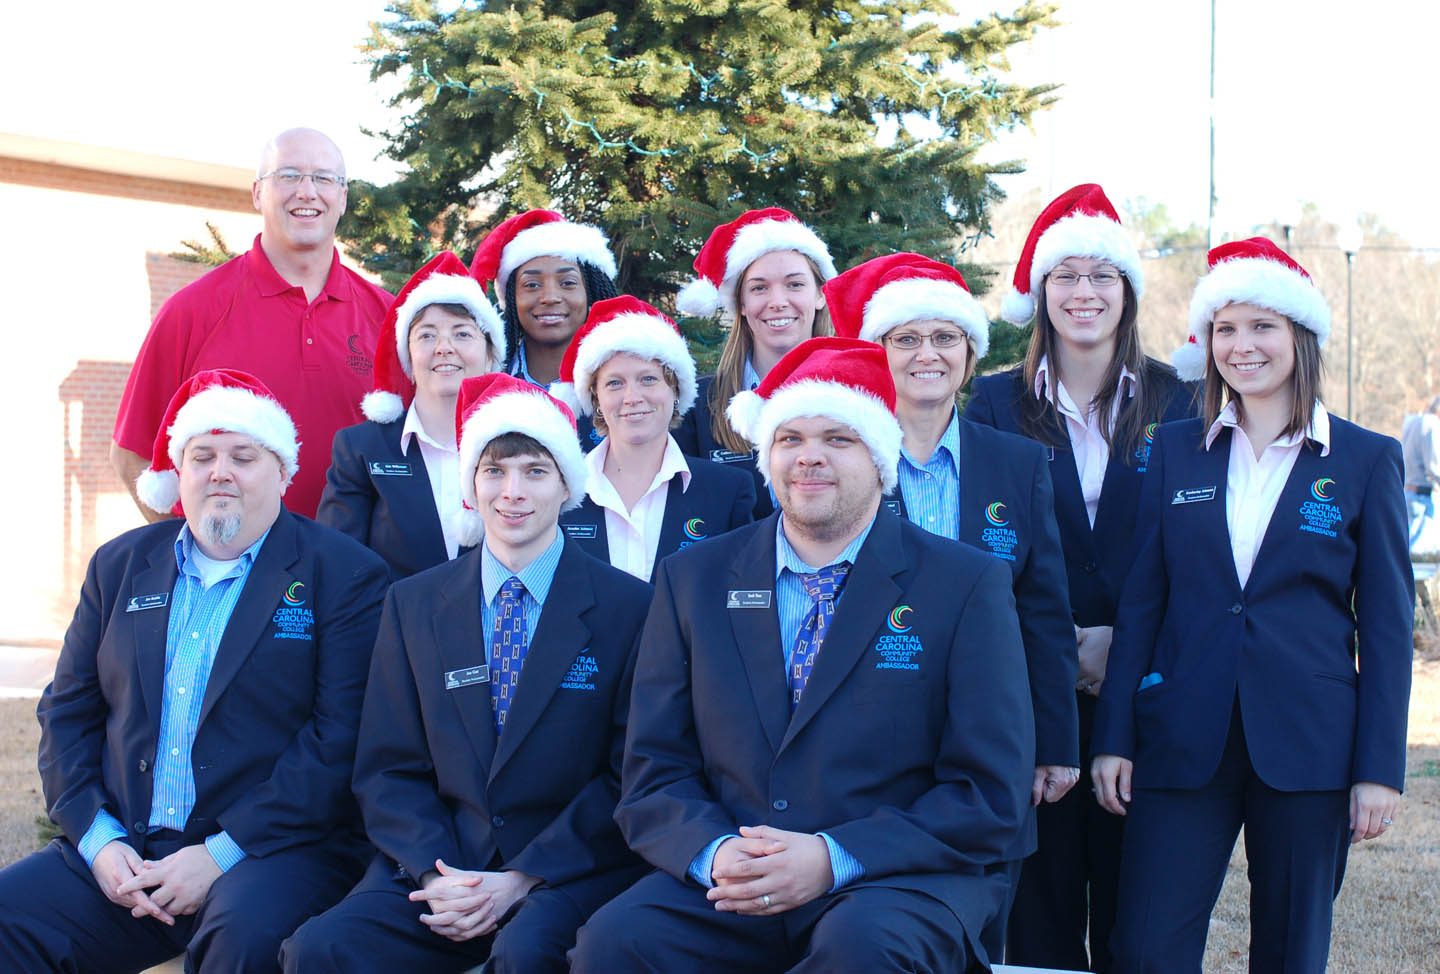 Click to enlarge,  Central Carolina Community College's Student Ambassadors in the holiday spirit. Ambassadors for the 2012-13 school year are (front, from left) Jonathan Stubbs, of Pittsboro; Joe Cox, of Siler City; Seth Tom, of Sanford; (second row, from left) Kim Wilkinson, of Durham; Jennifer Sanford Johnson, of Raleigh; Sandy Olmsted, of Cameron; Kimberley Laster Johnson, of Dunn; (back, from left) CCCC Student Activities Director/Athletics Director/Ambassador Advisor Mike Neal; Narrie Liverman, of Angier; Colleen Cunningham, of Sanford; and Ashley Volan, of Apex. To be an Ambassador, students must have good grade point averages, leadership potential, communication skills and be nominated by faculty or staff.